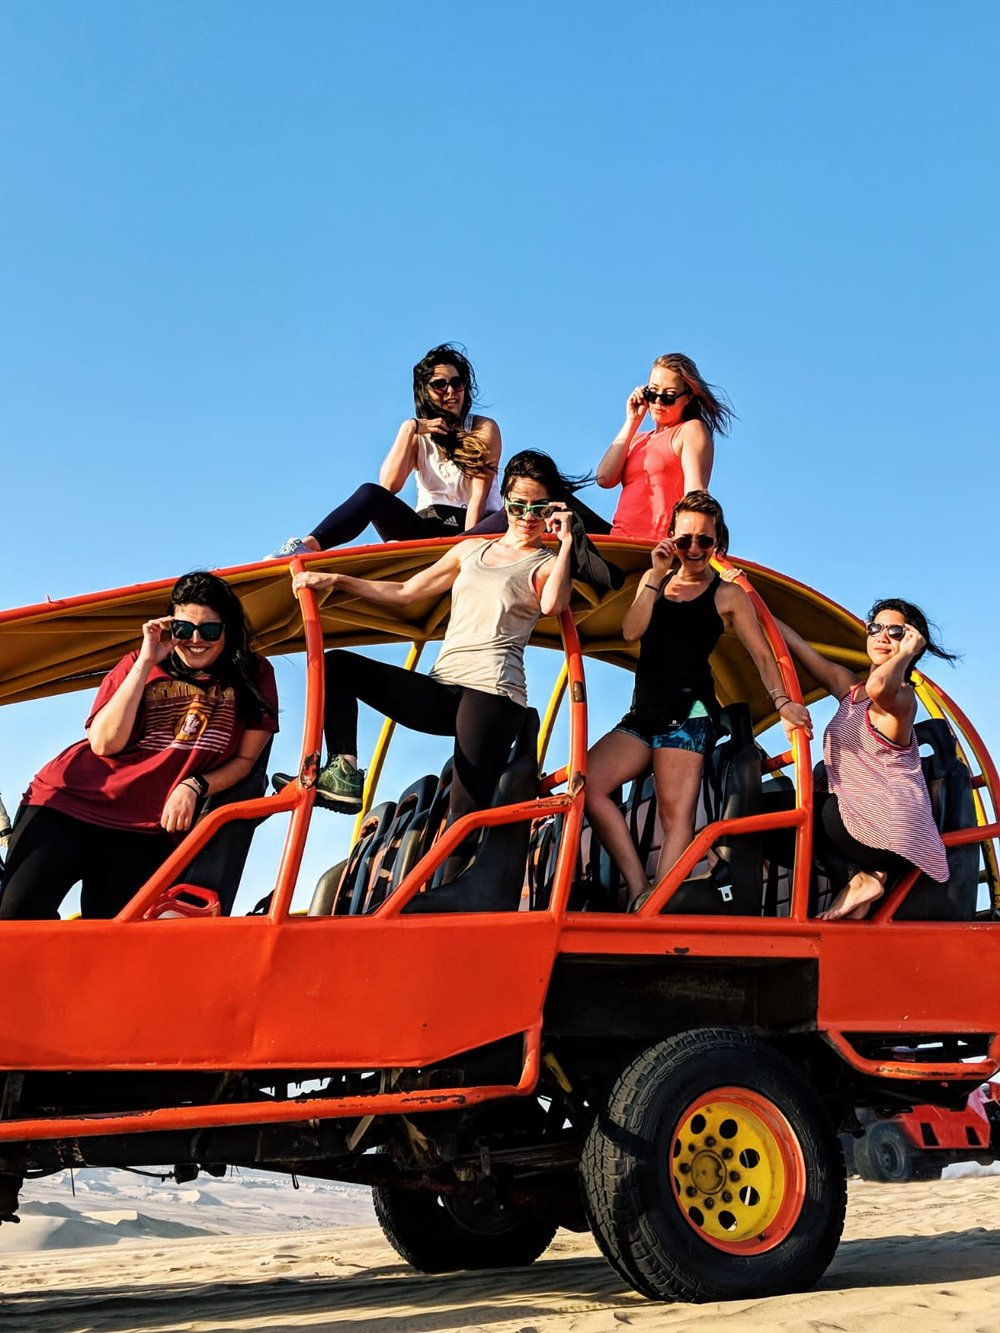 Dune buggies with Kahlo ladies